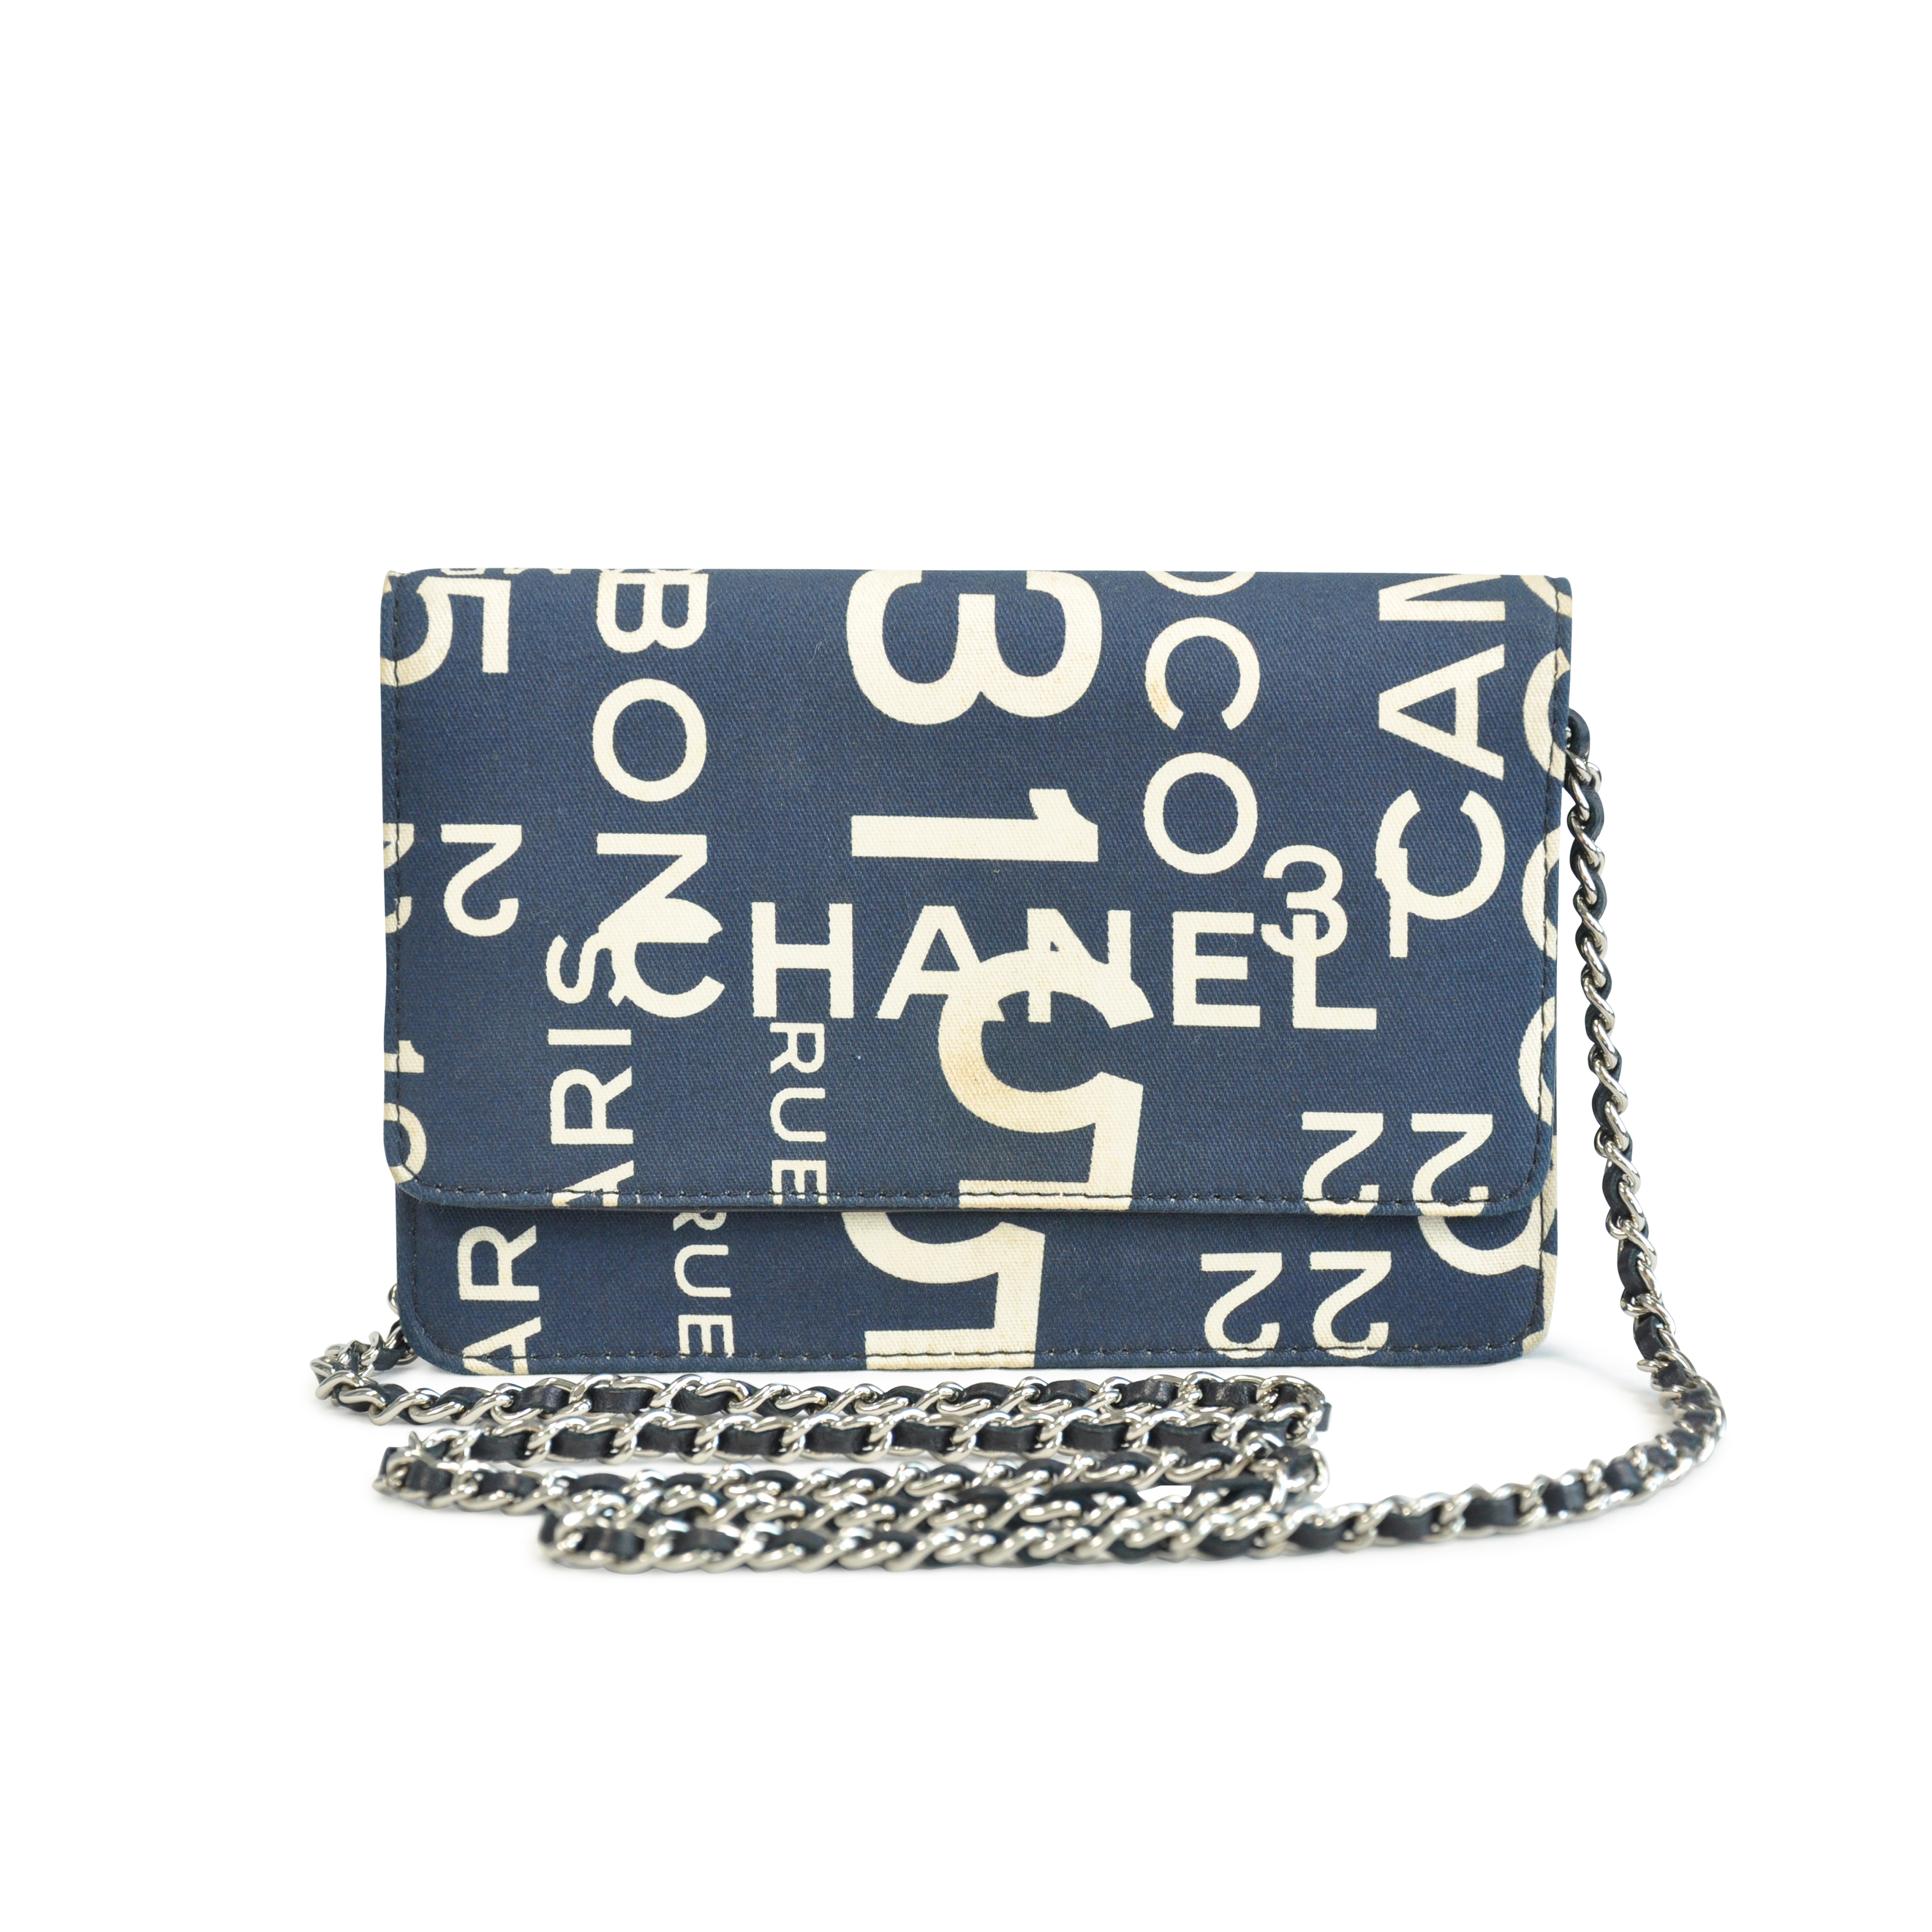 632ba03eae28f4 Authentic Second Hand Chanel Wallet on Chain Bag (PSS-130-00003) | THE  FIFTH COLLECTION